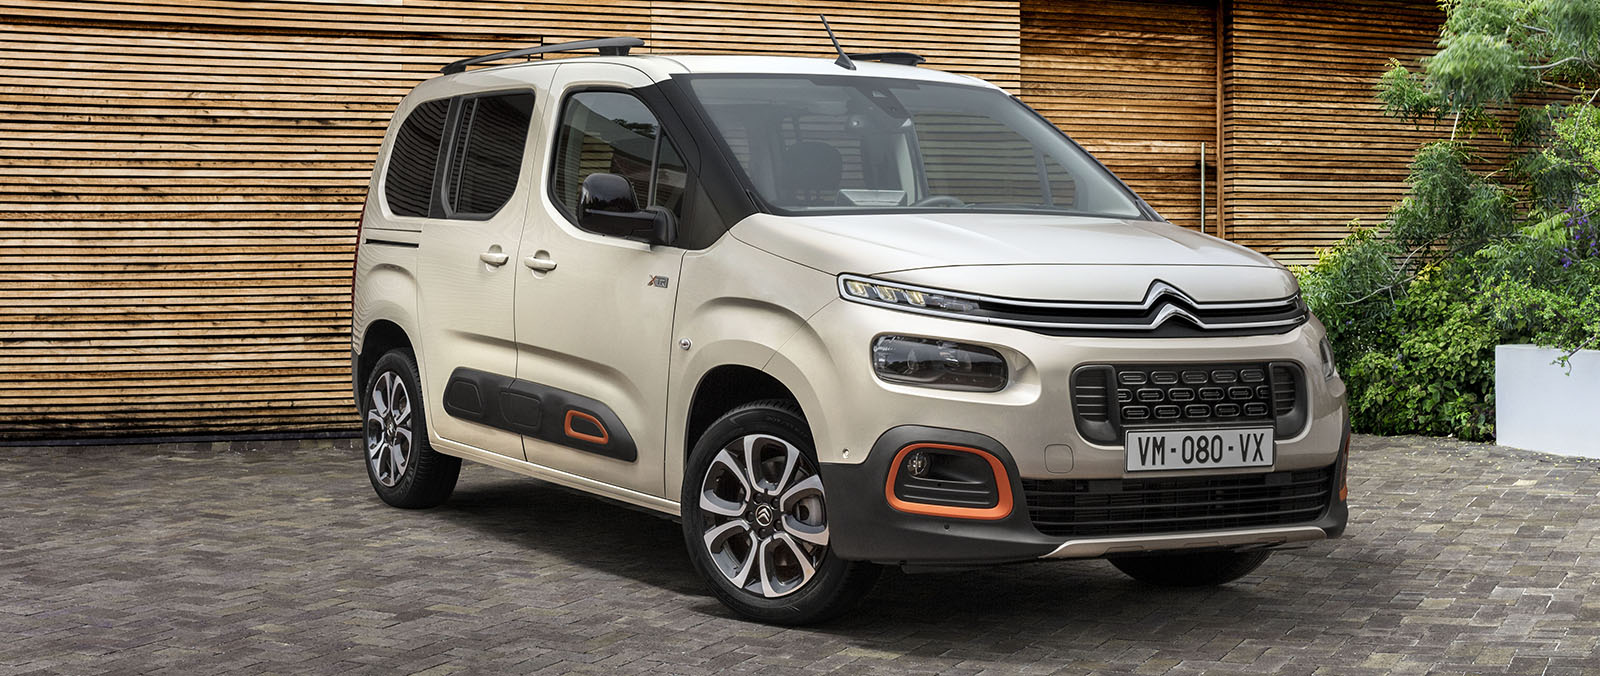 Citroen presenteert 3e generatie Berlingo